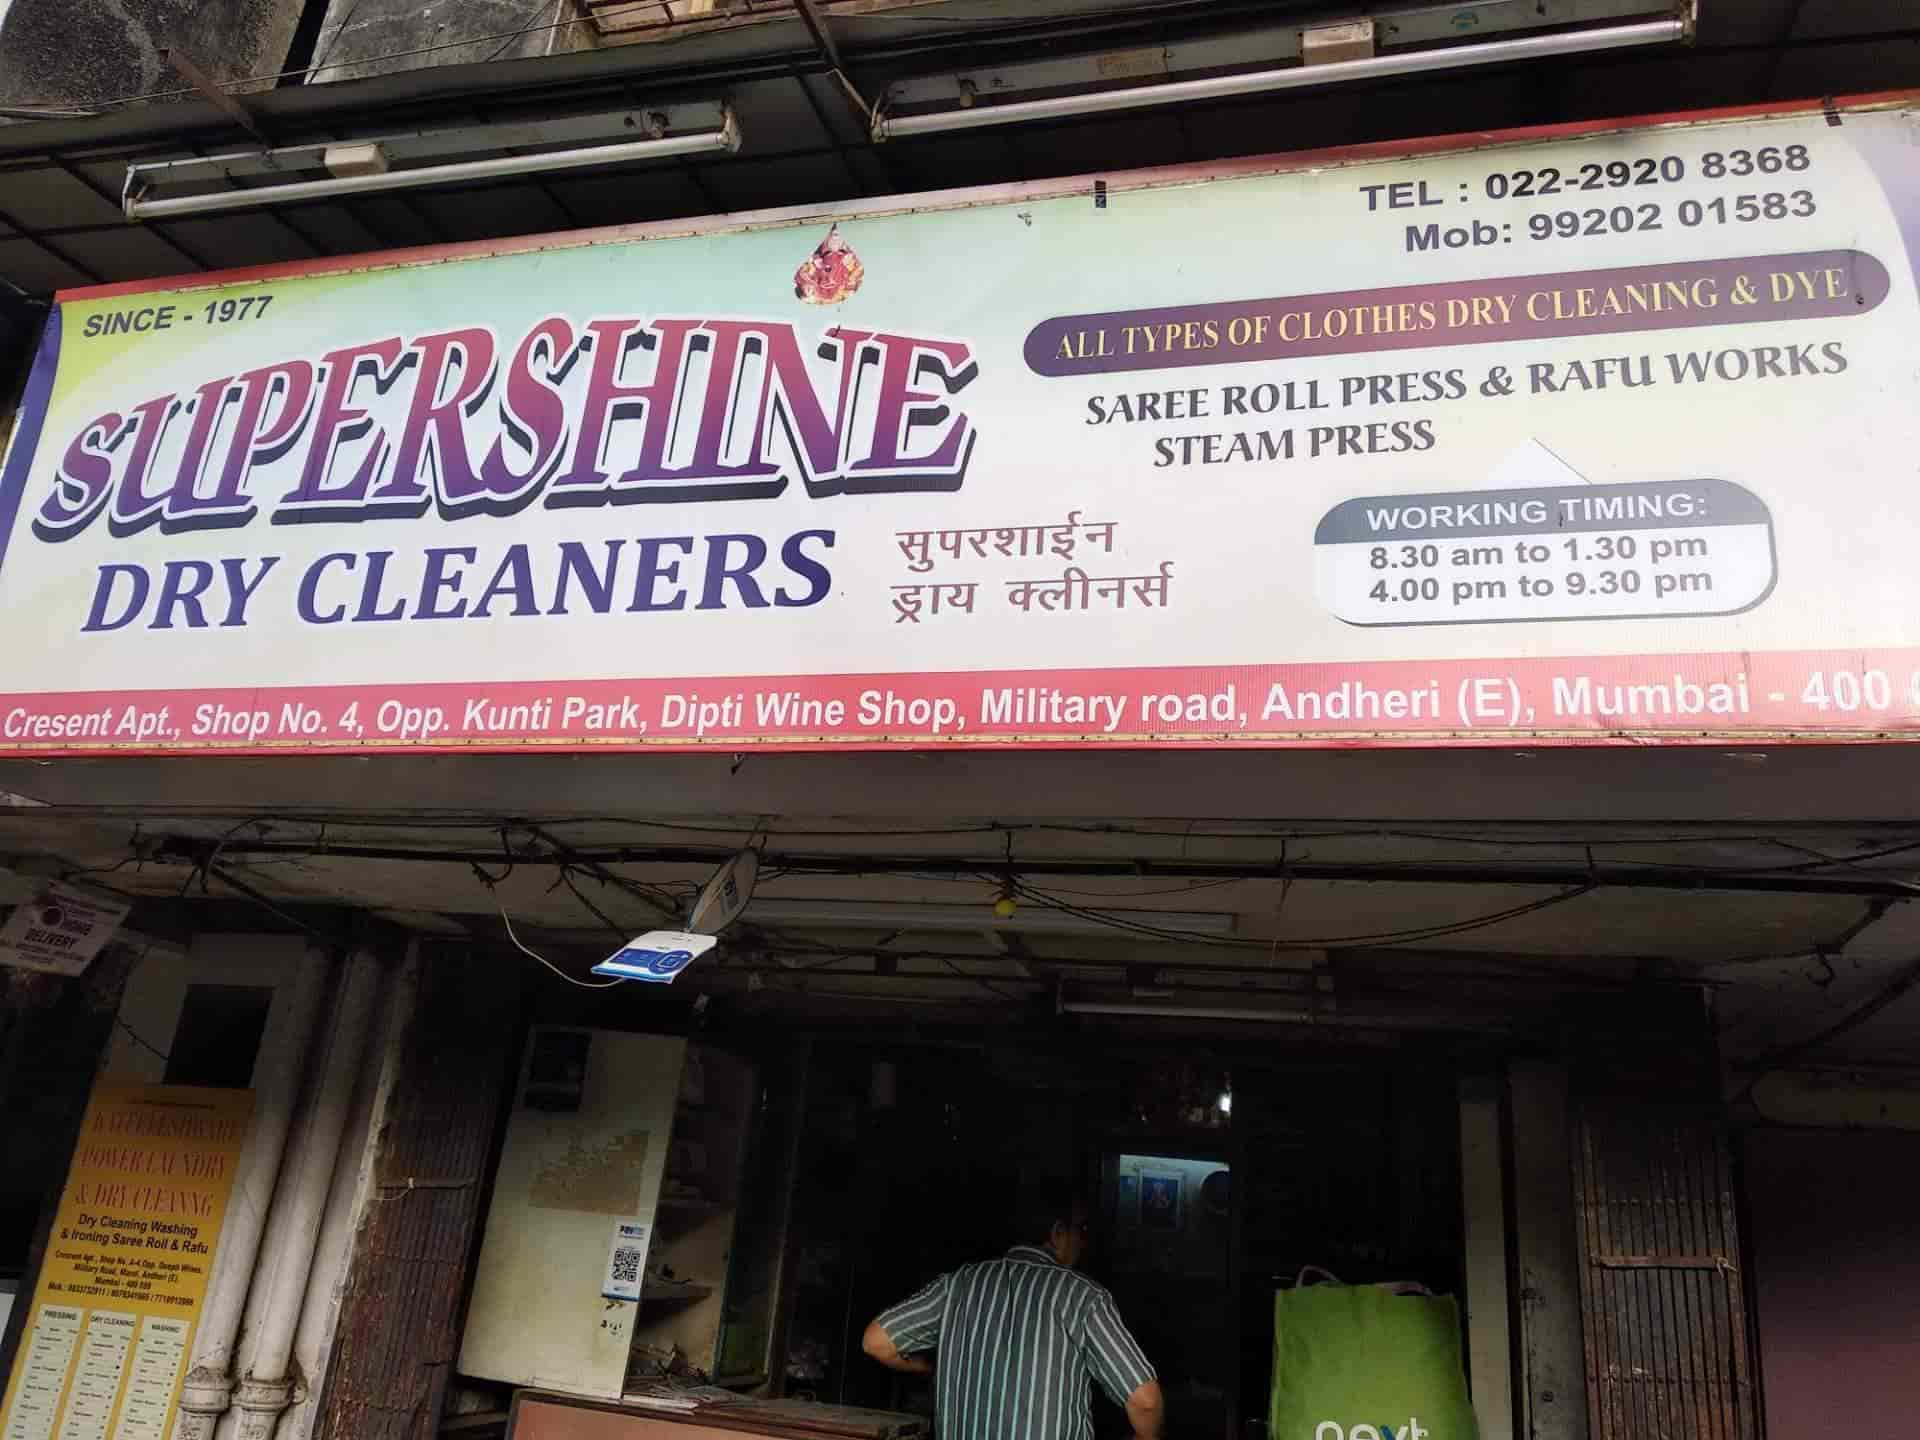 Supershine Dry Cleaners, Andheri East - Dry Cleaners in